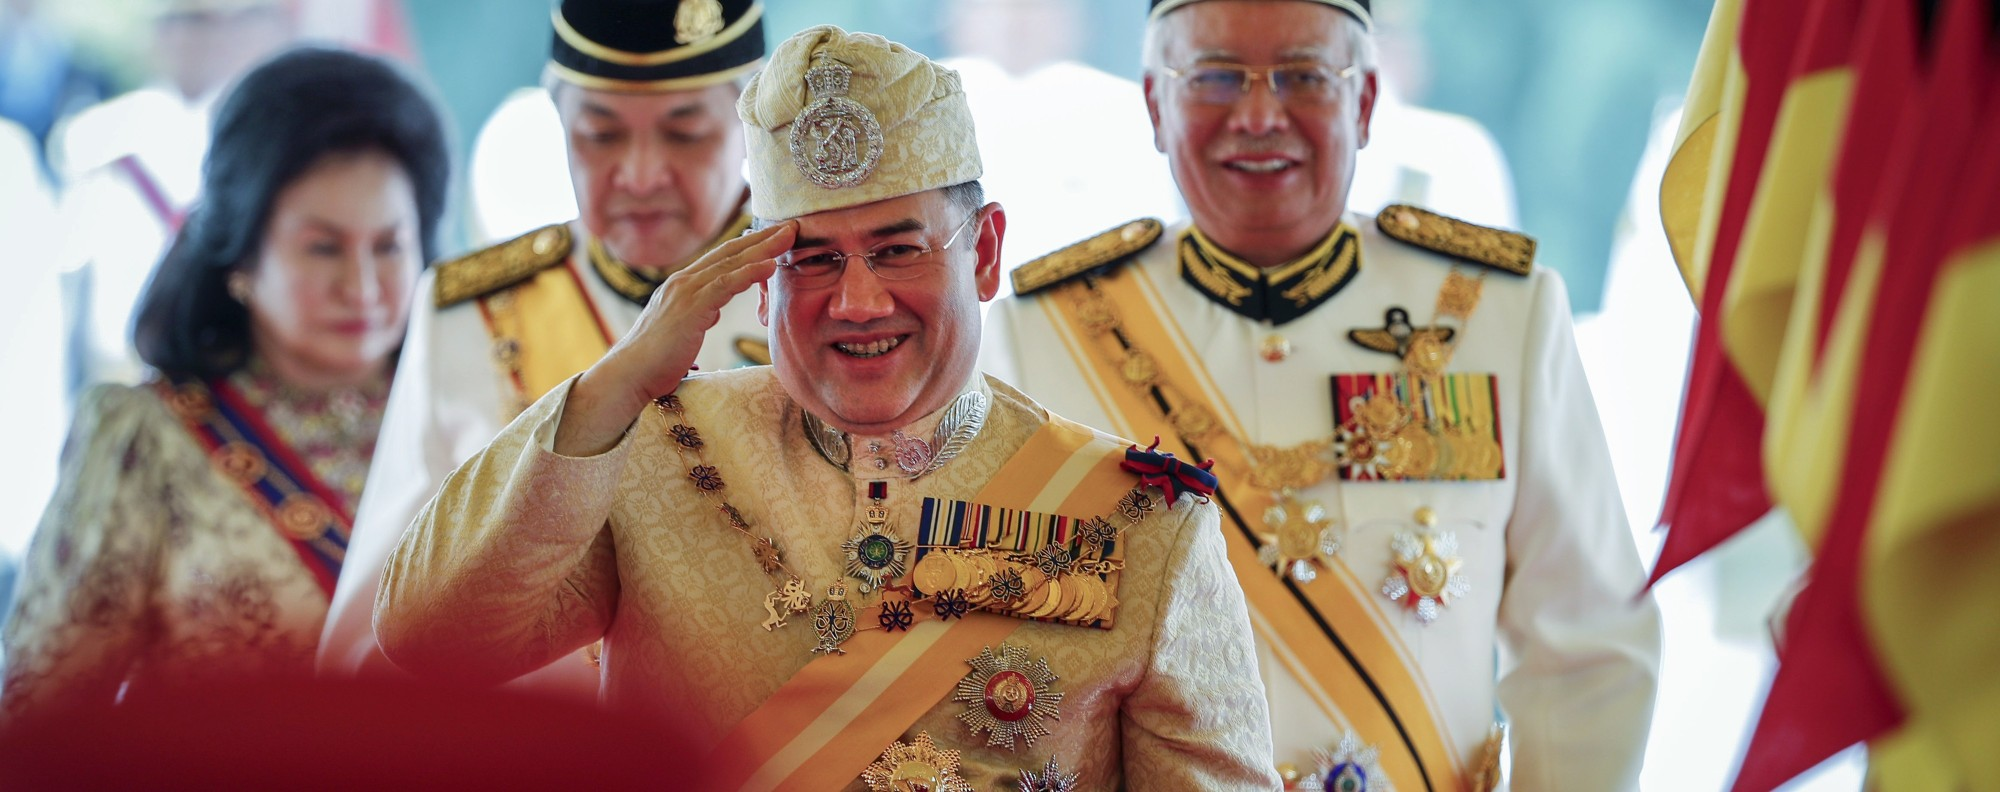 Sultan Muhammad V salutes after a welcoming ceremony. Photo: AP